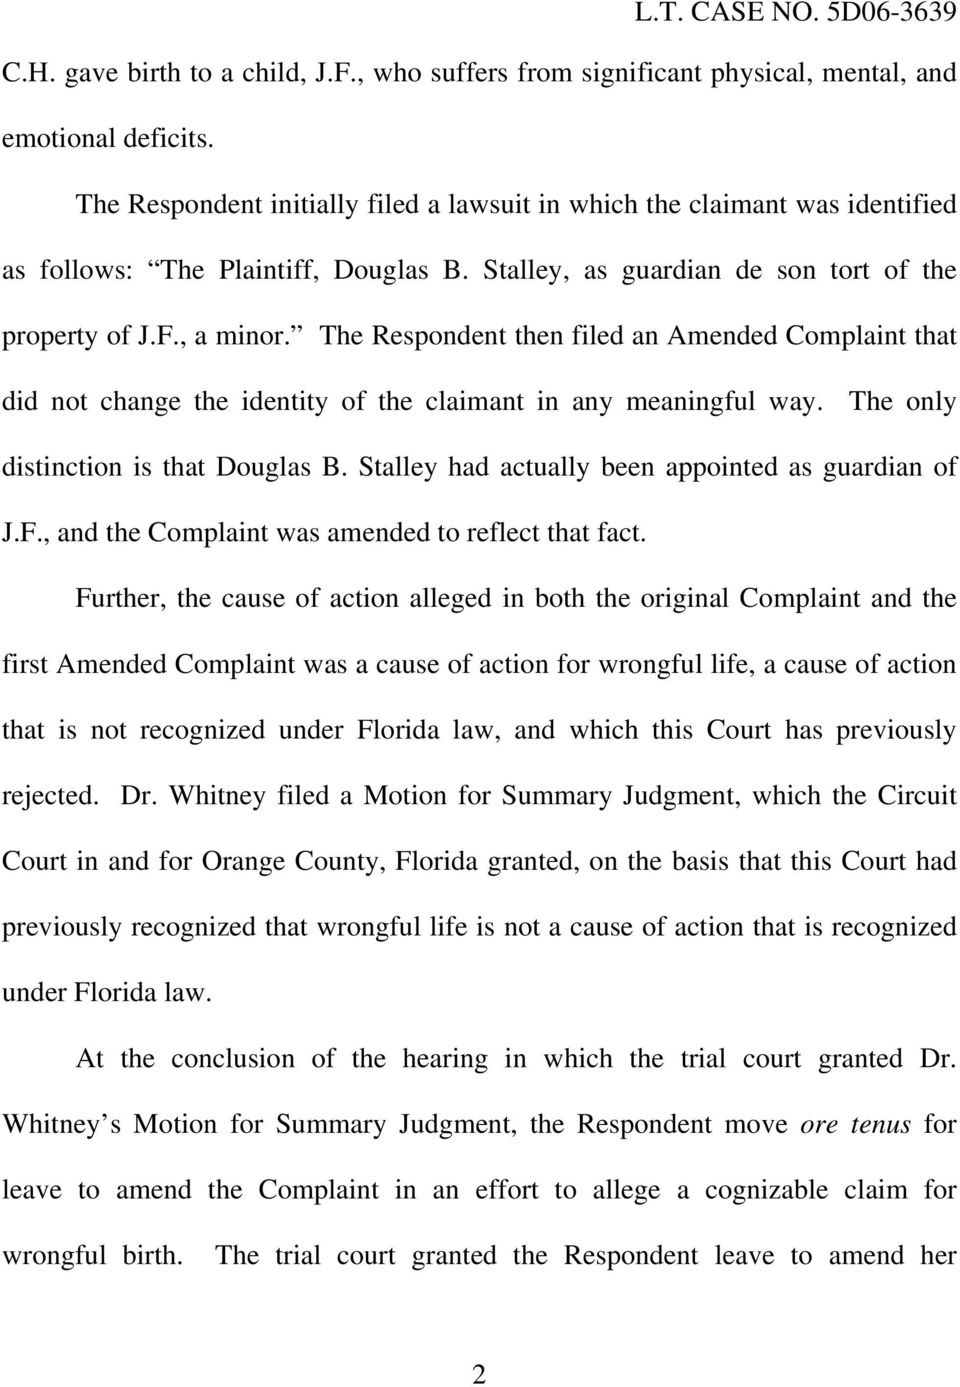 The Respondent then filed an Amended Complaint that did not change the identity of the claimant in any meaningful way. The only distinction is that Douglas B.